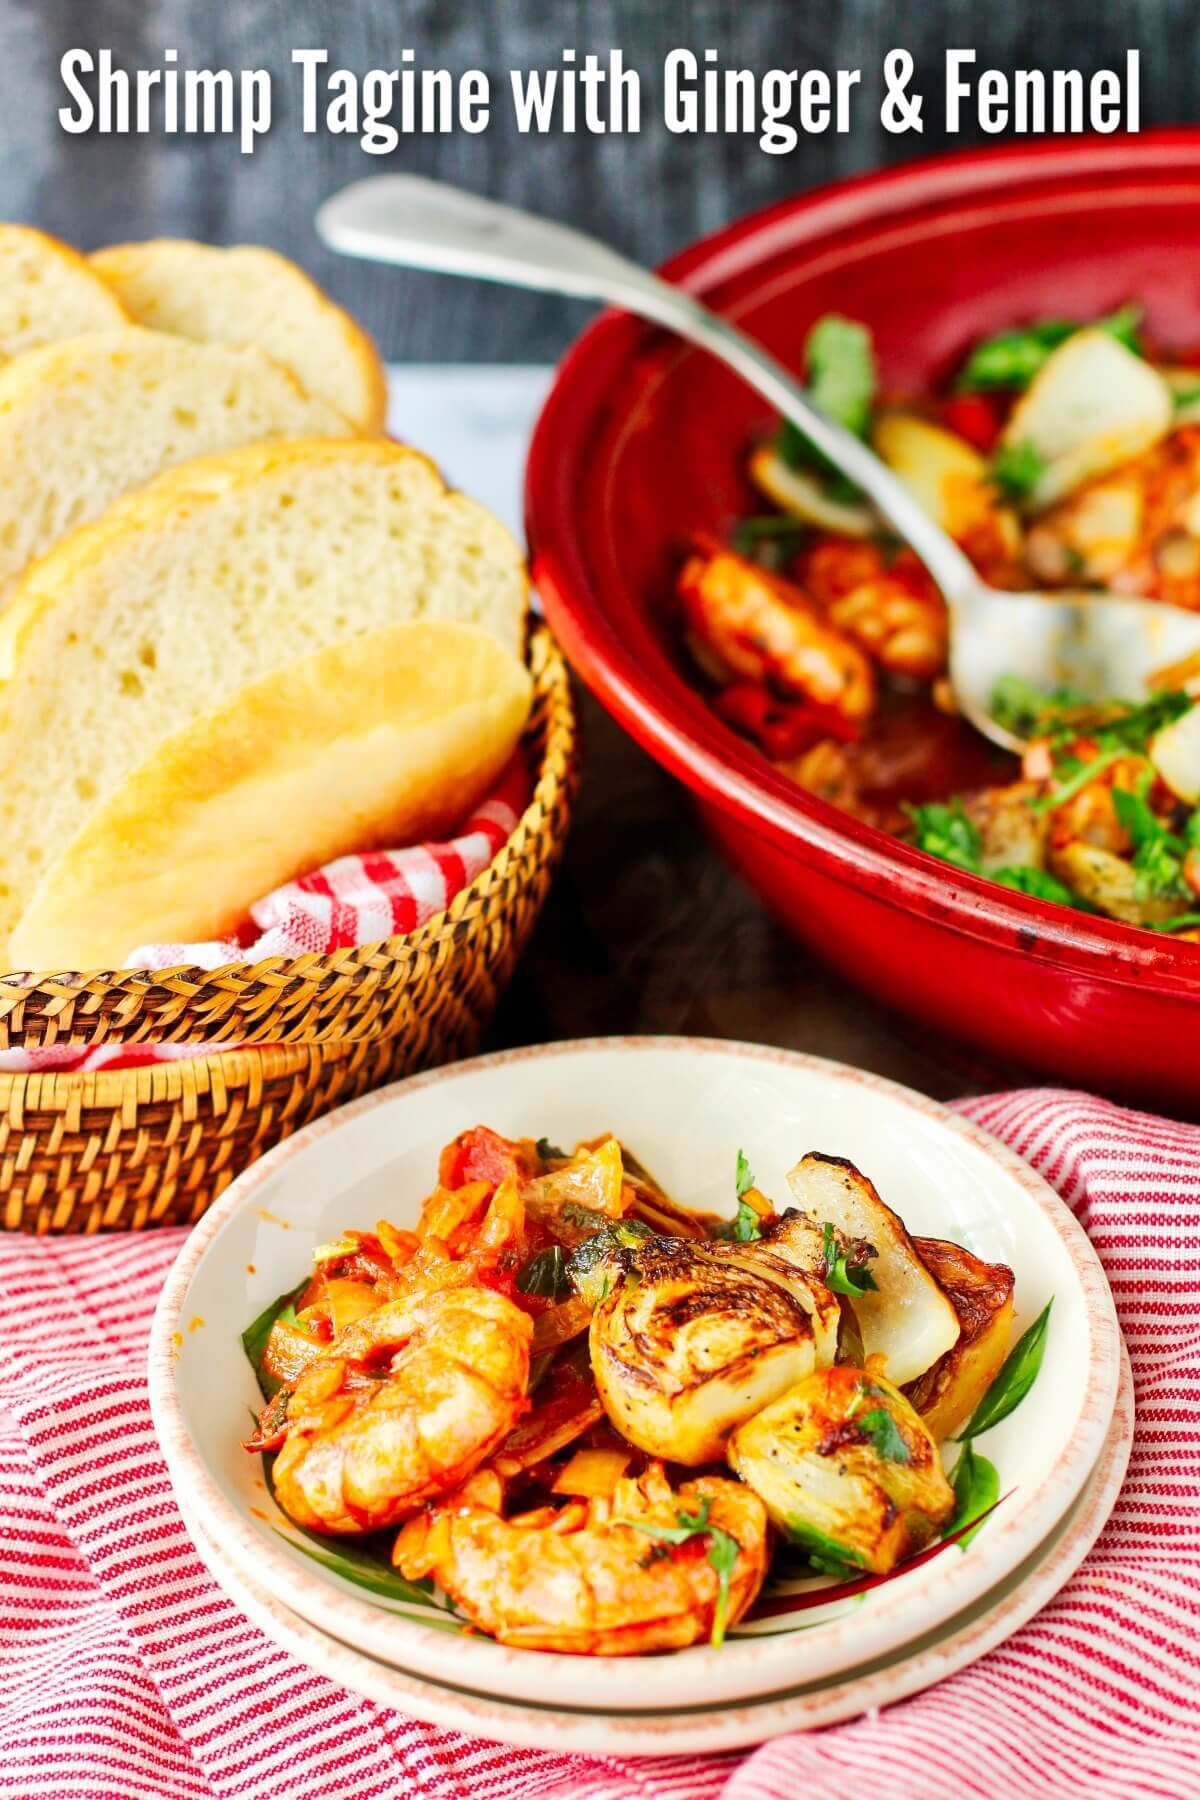 Moroccan Shrimp Tagine with Garlic, Ginger, and Fennel